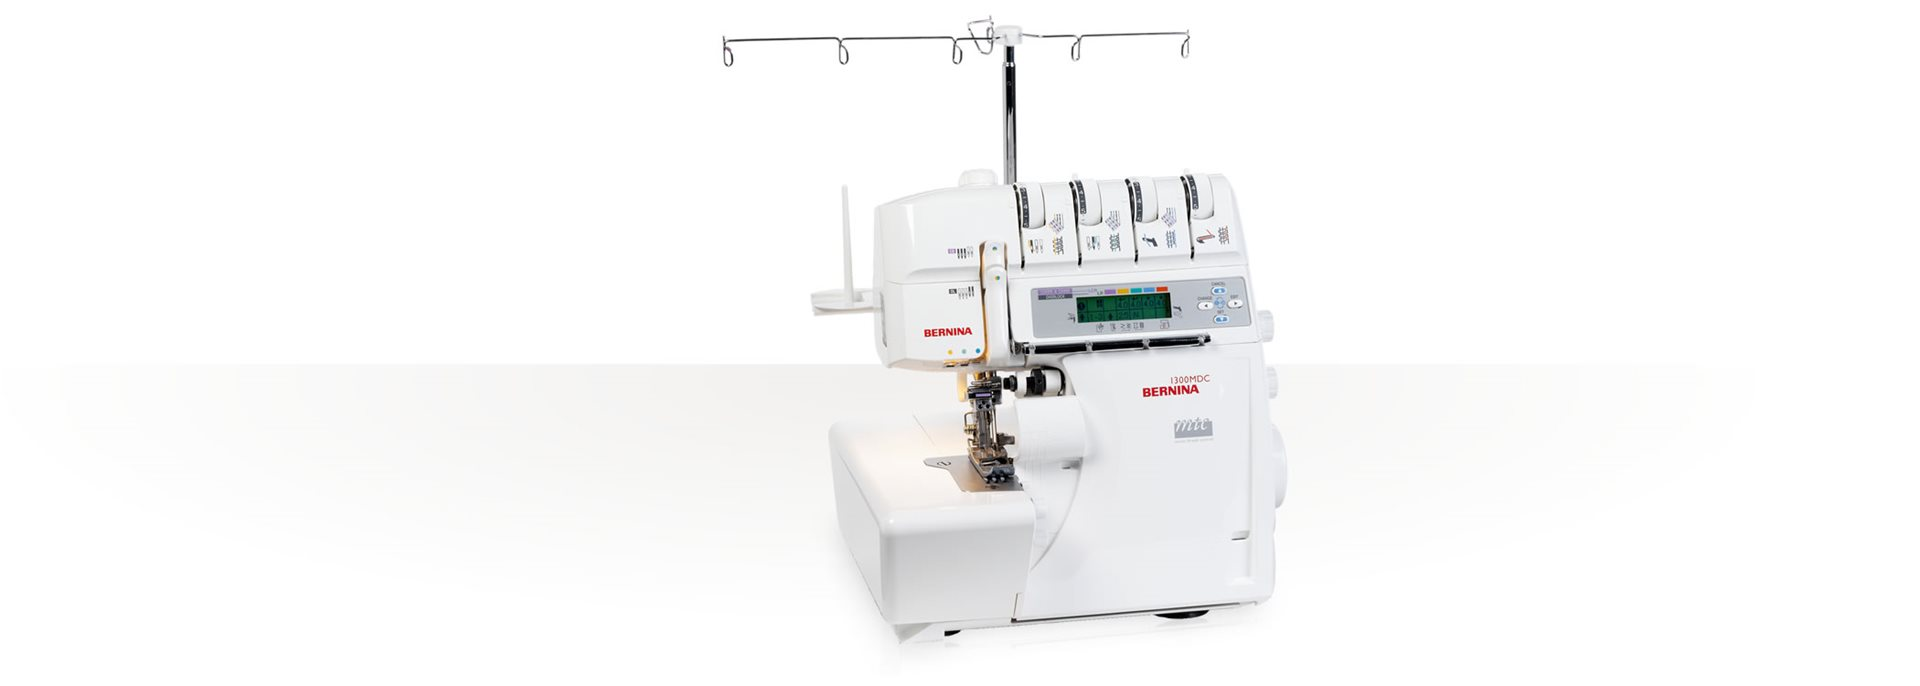 Picture: Overlock-/Coverstitch